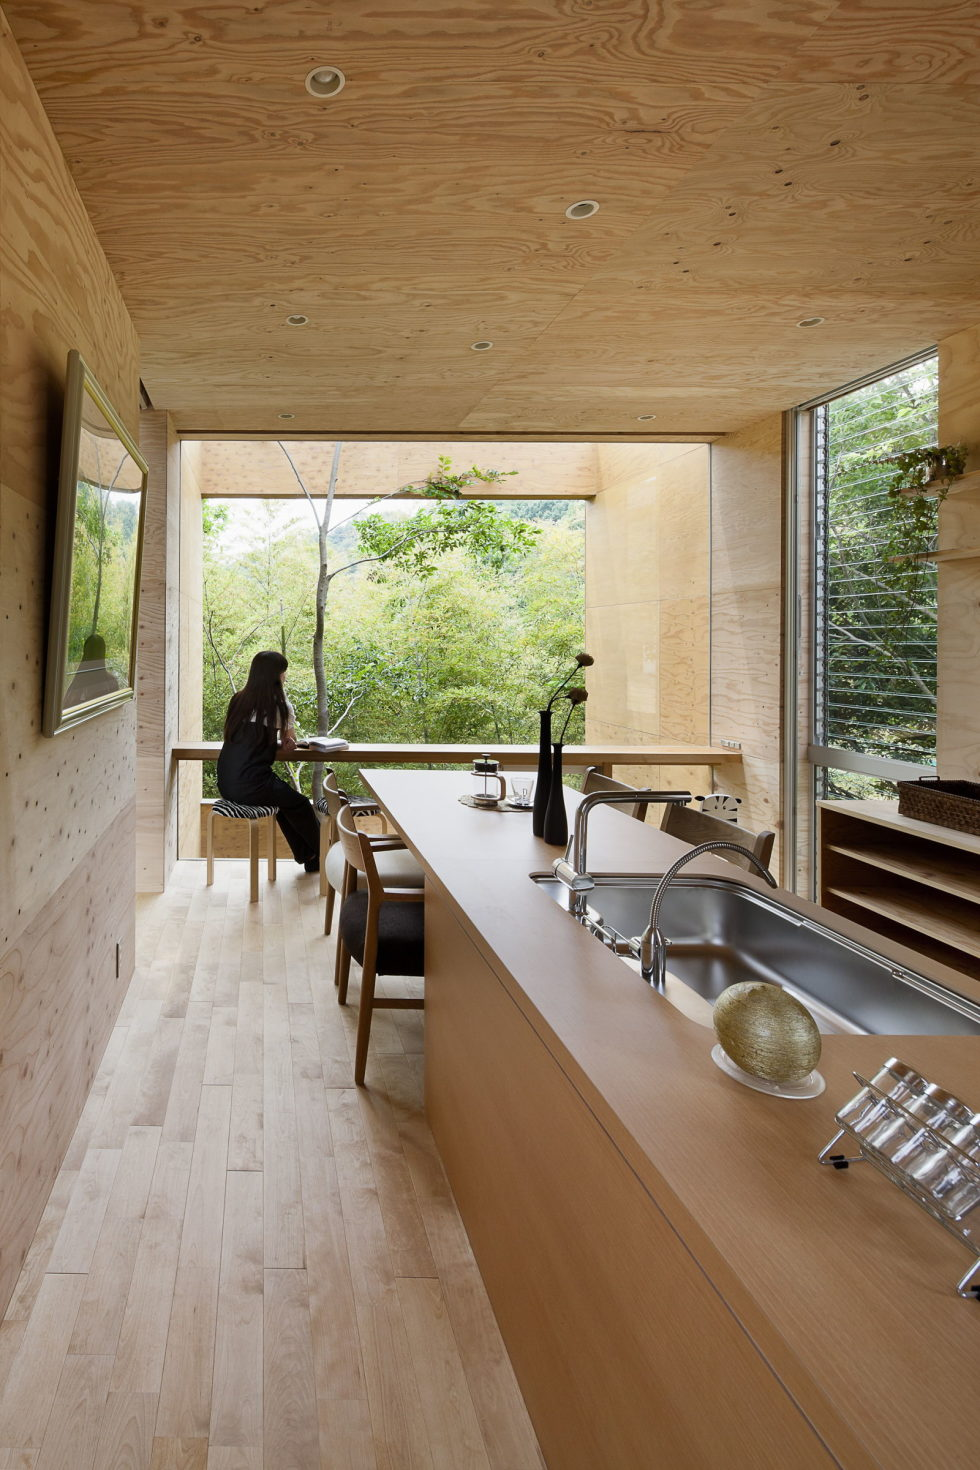 The pendulous over the forest house '+ node' from the UID Architects 7